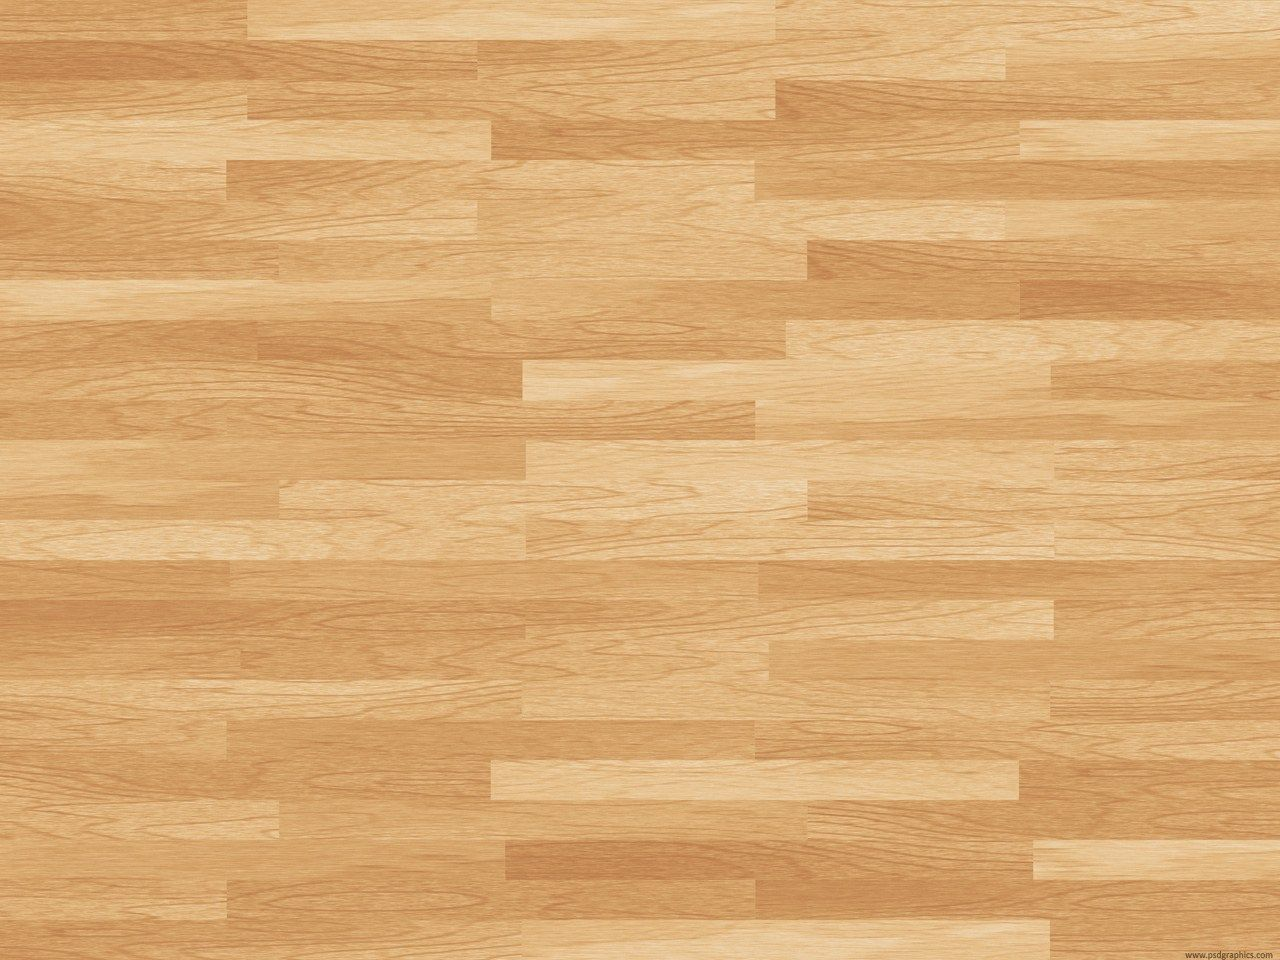 Flooring clipart. Wood google search woods